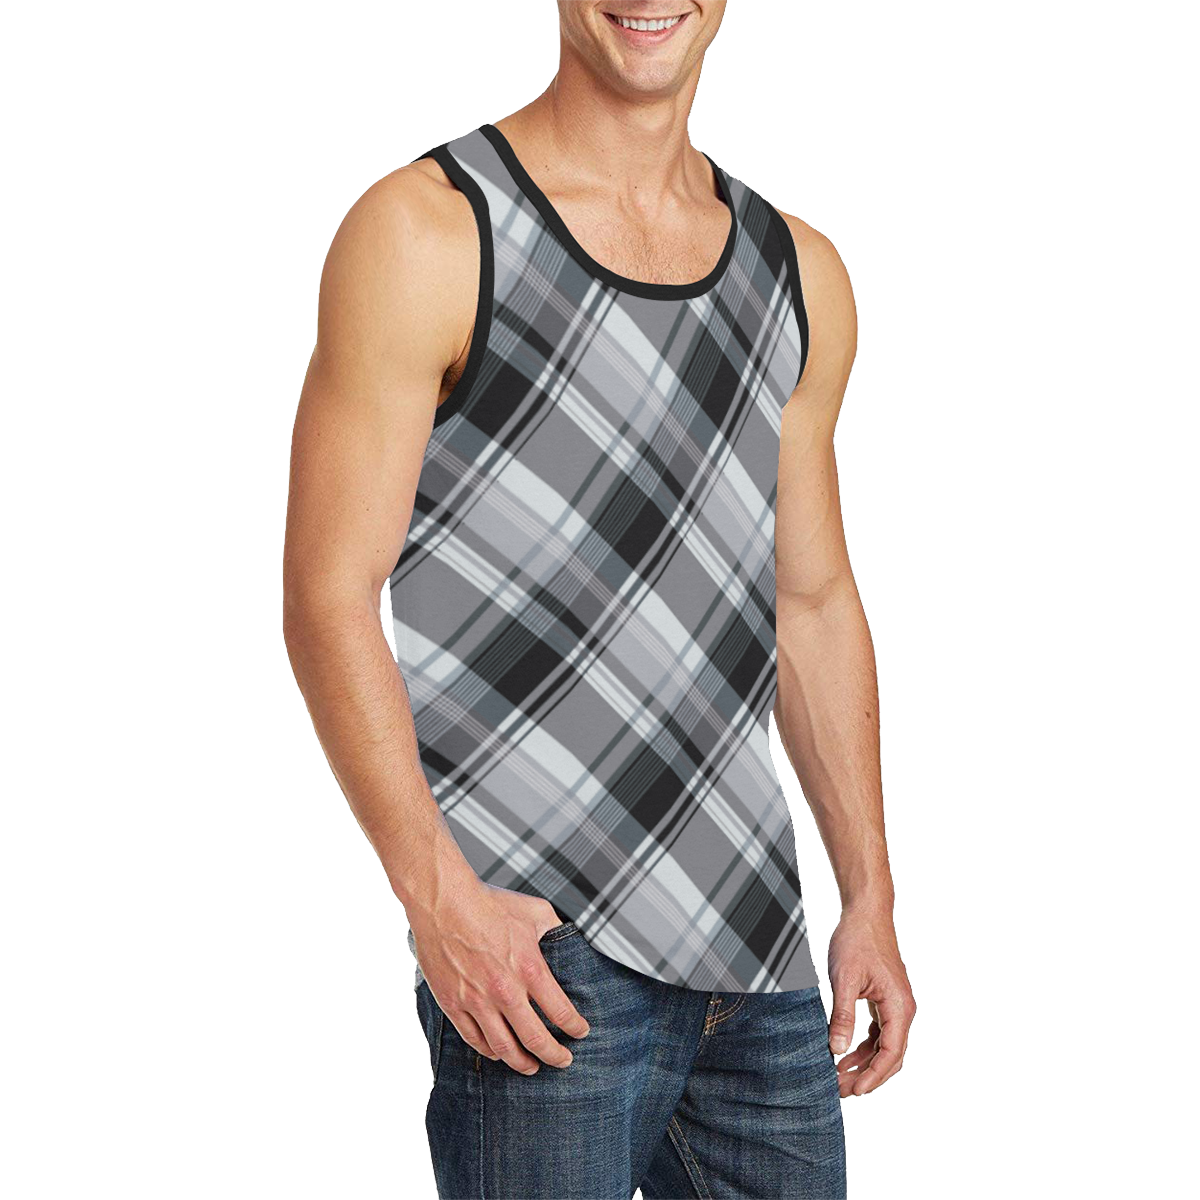 BETTO Tank Top